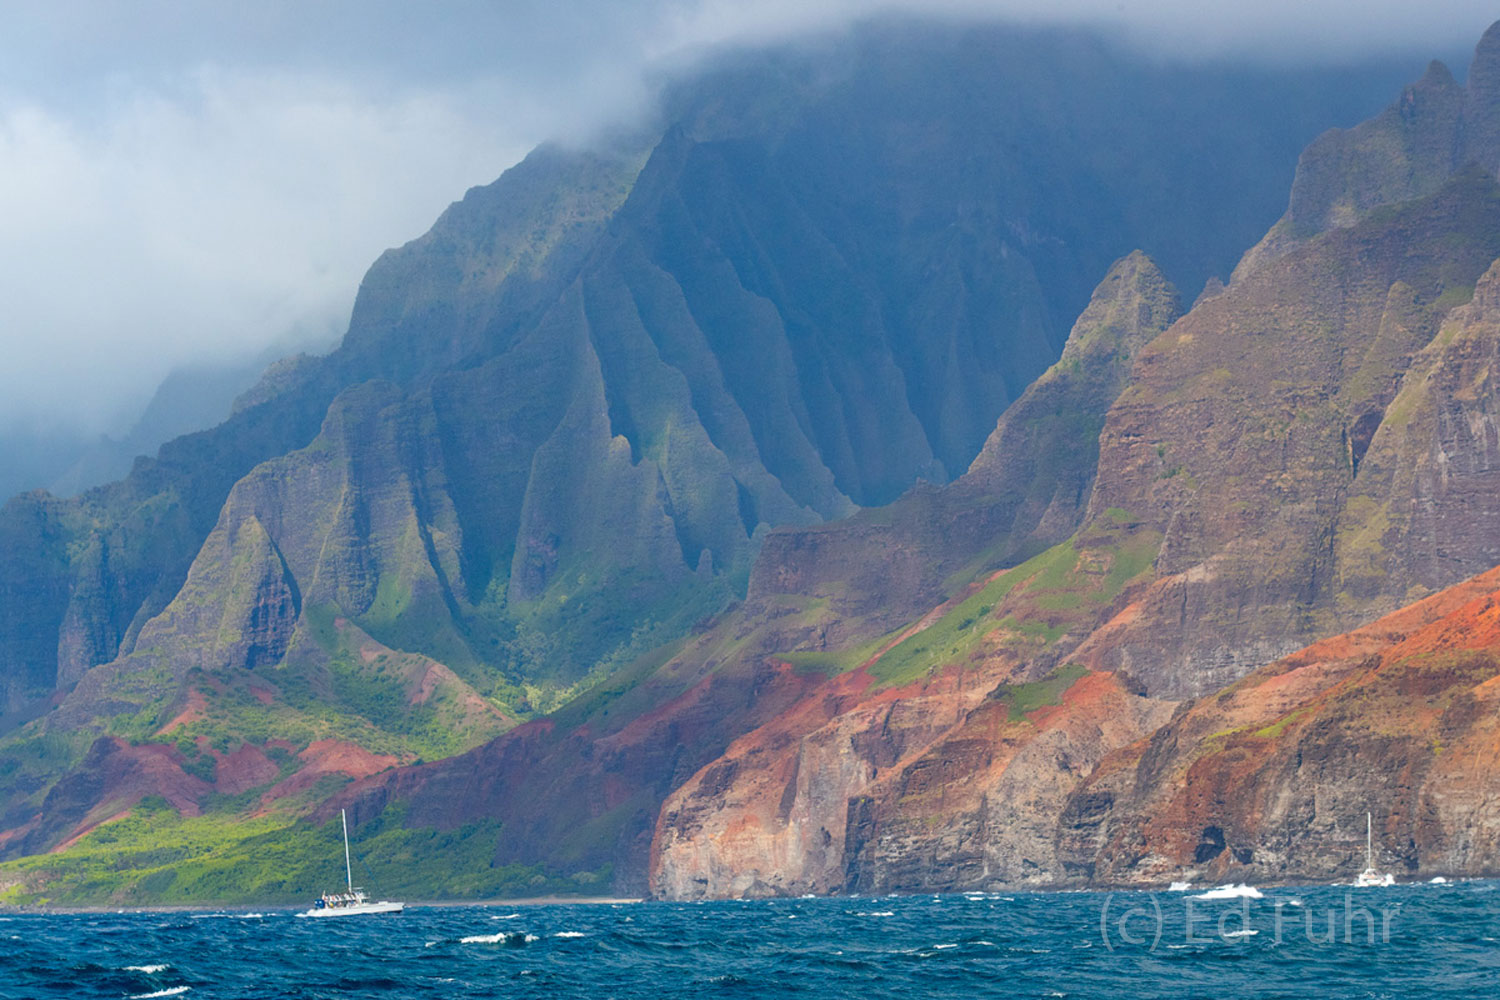 Sailing the Na Pali Coast at sunset when the light strikes the mountains as they tumble into the ocean is a sight to remember...